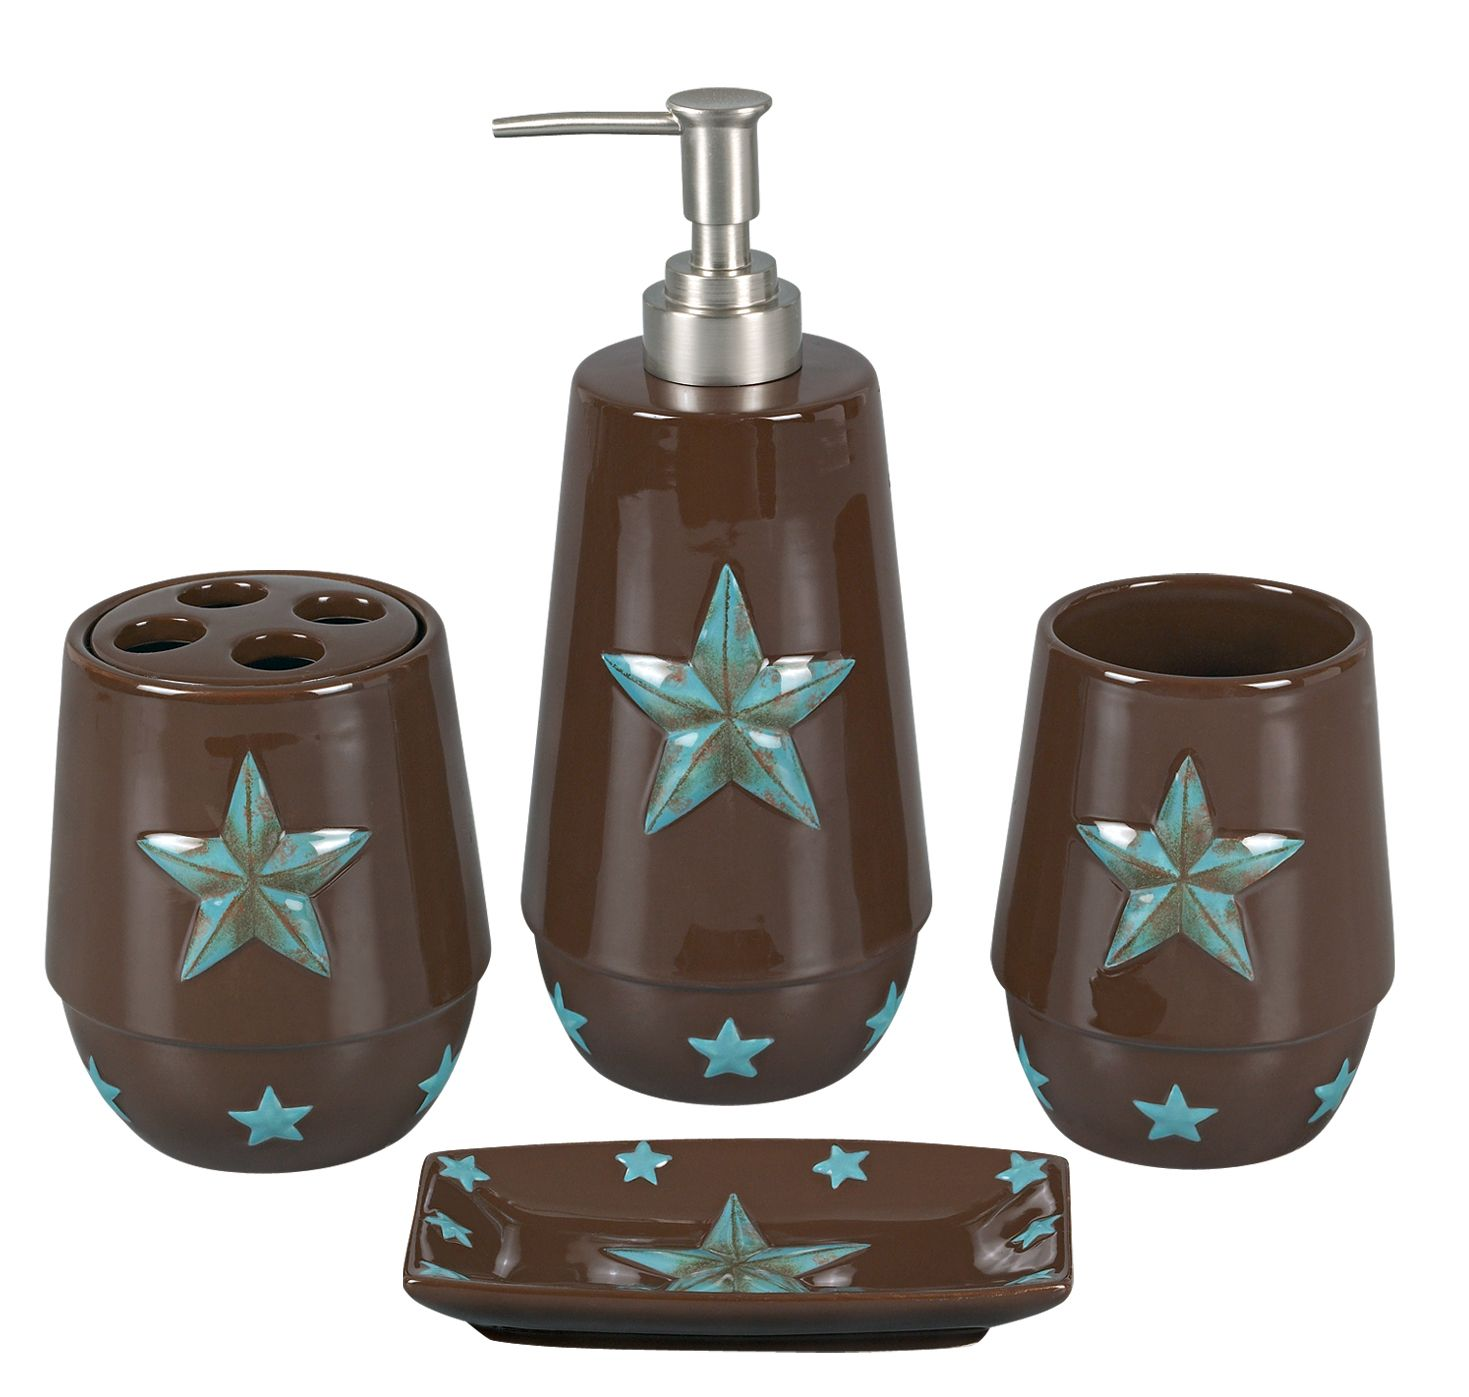 Our Bathroom Decor Sets Are Rustic Brown Ceramic With Turquoise Western Stars Lotion Pump Soap Dish Toothbrush Holder Water Gl Bath